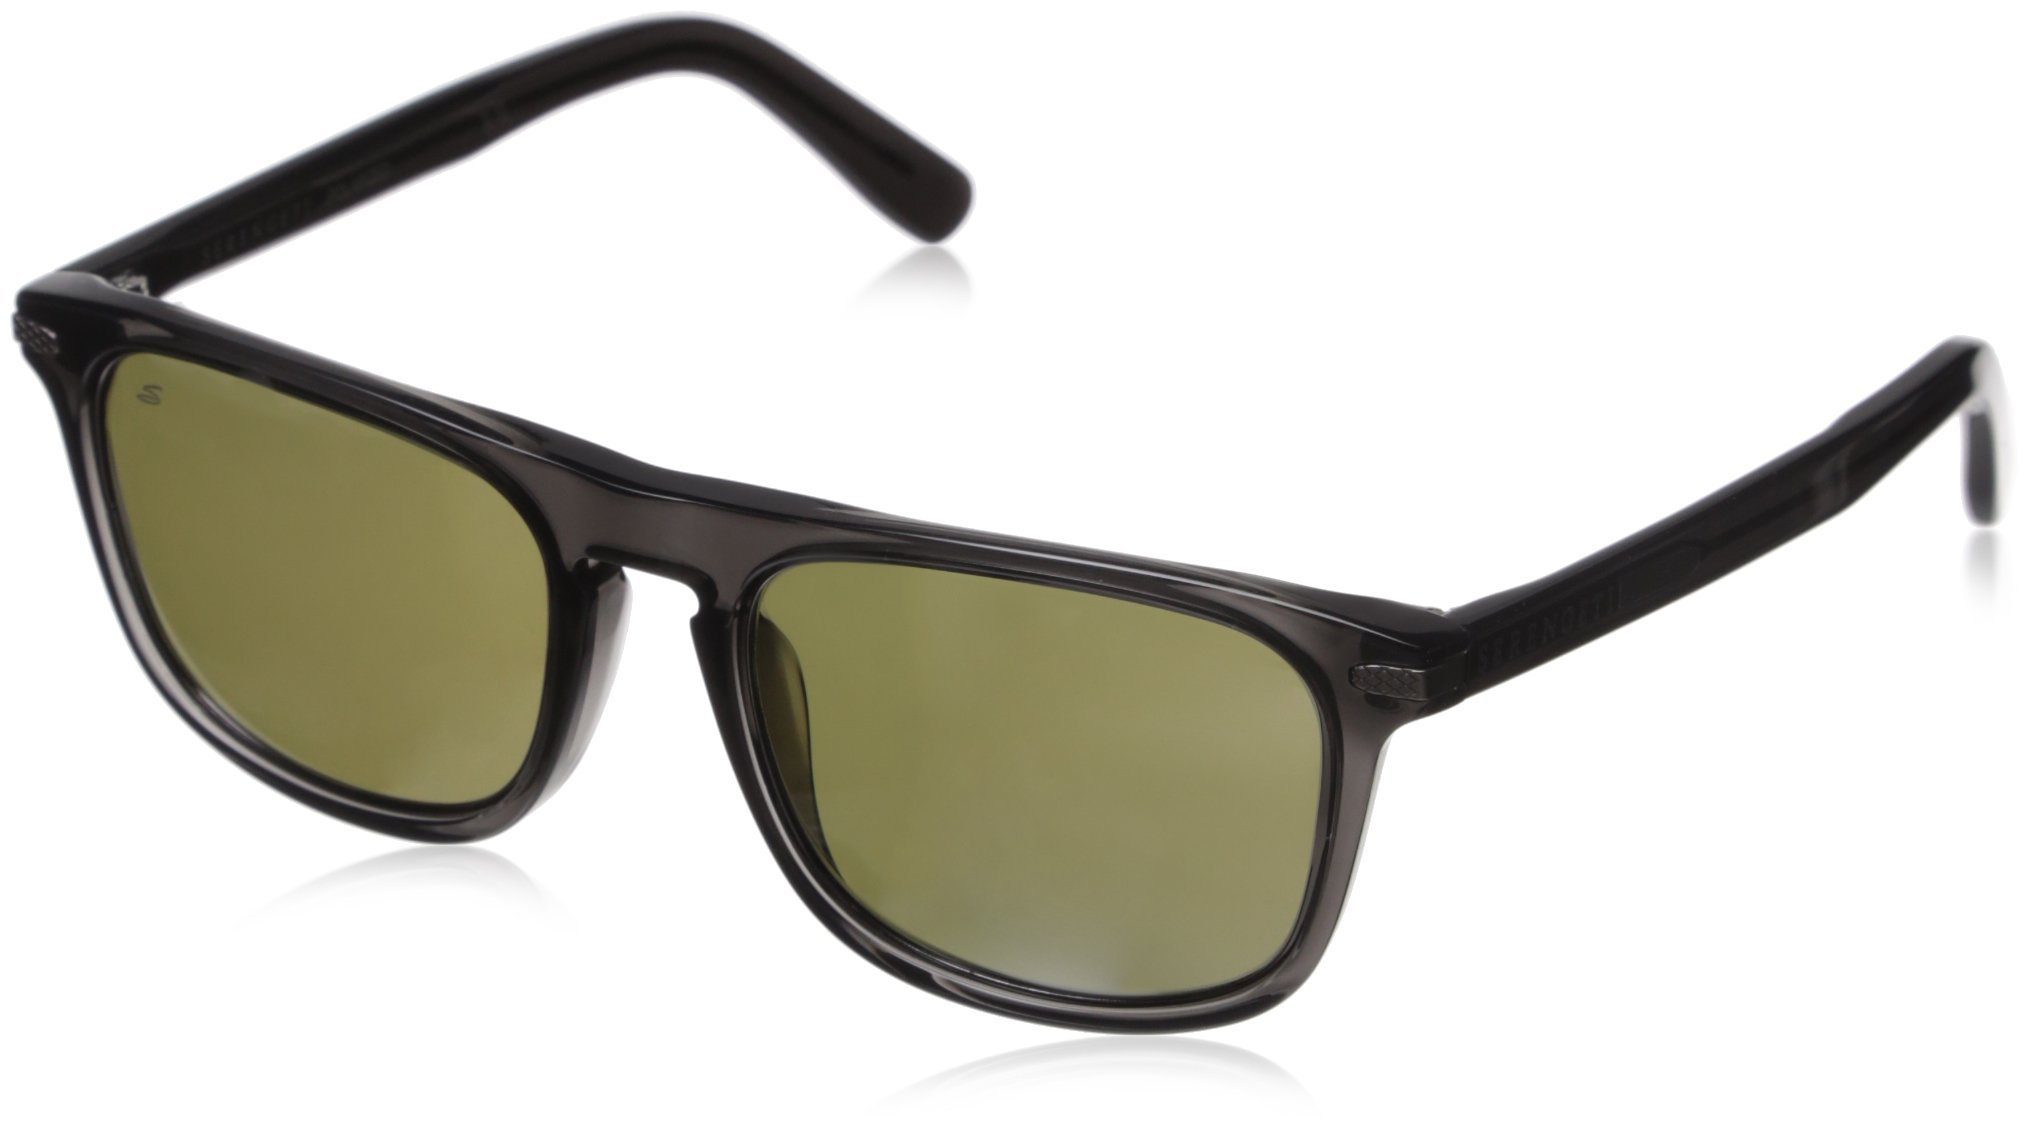 Serengeti 8157 Leonardo Sunglass, Dark Crystal Gray Frame, Polarized 555nm Lens